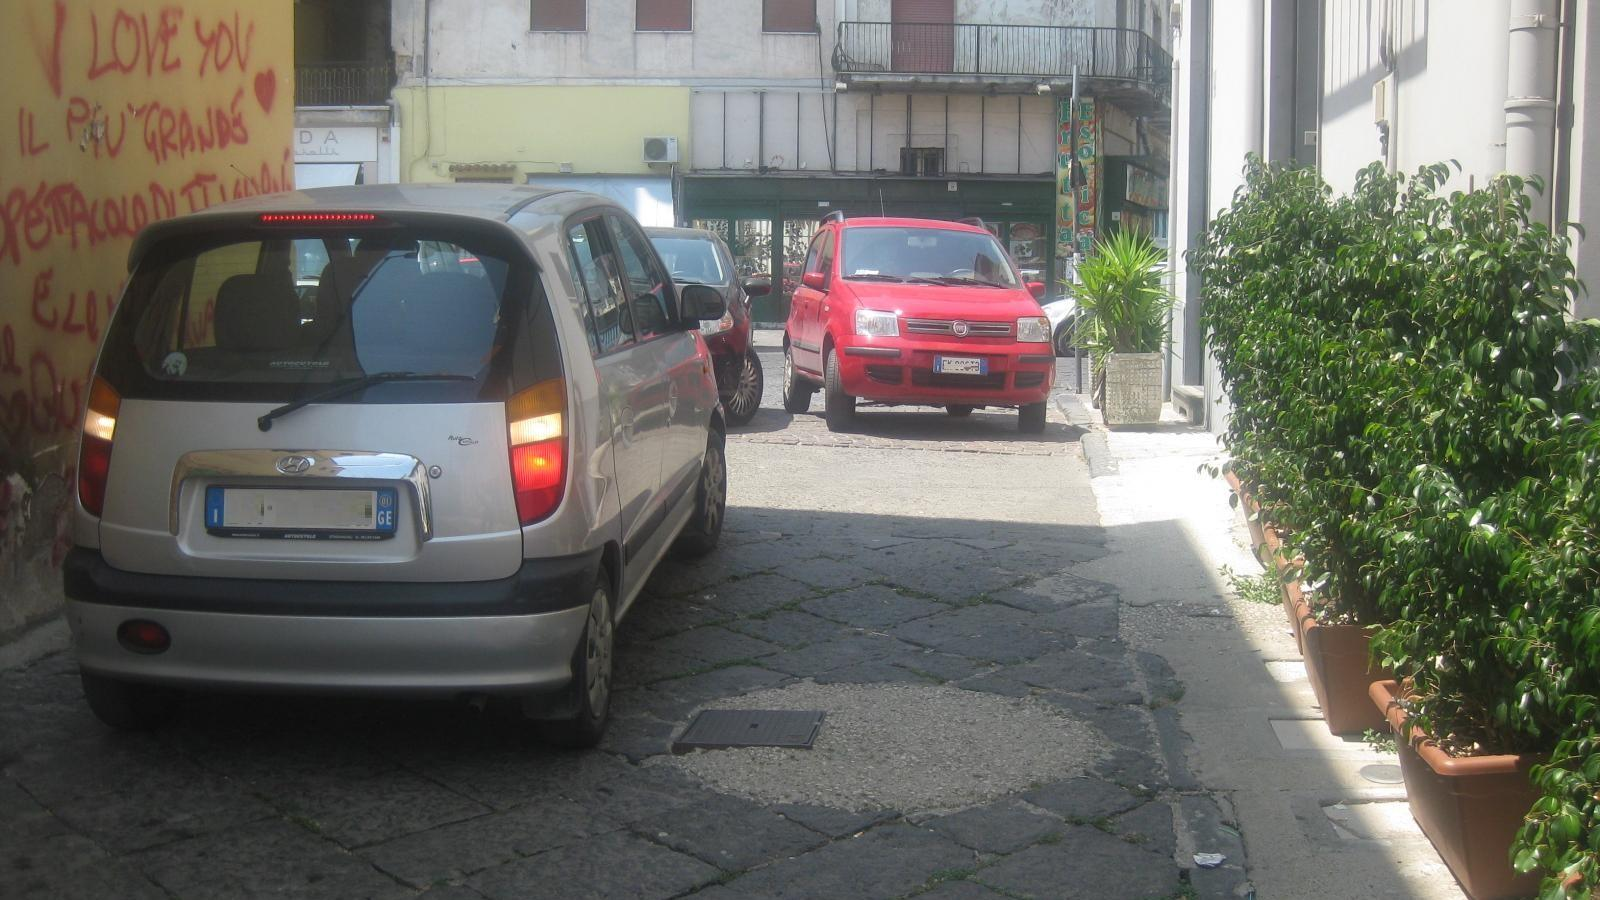 via durelli-auto in sosta